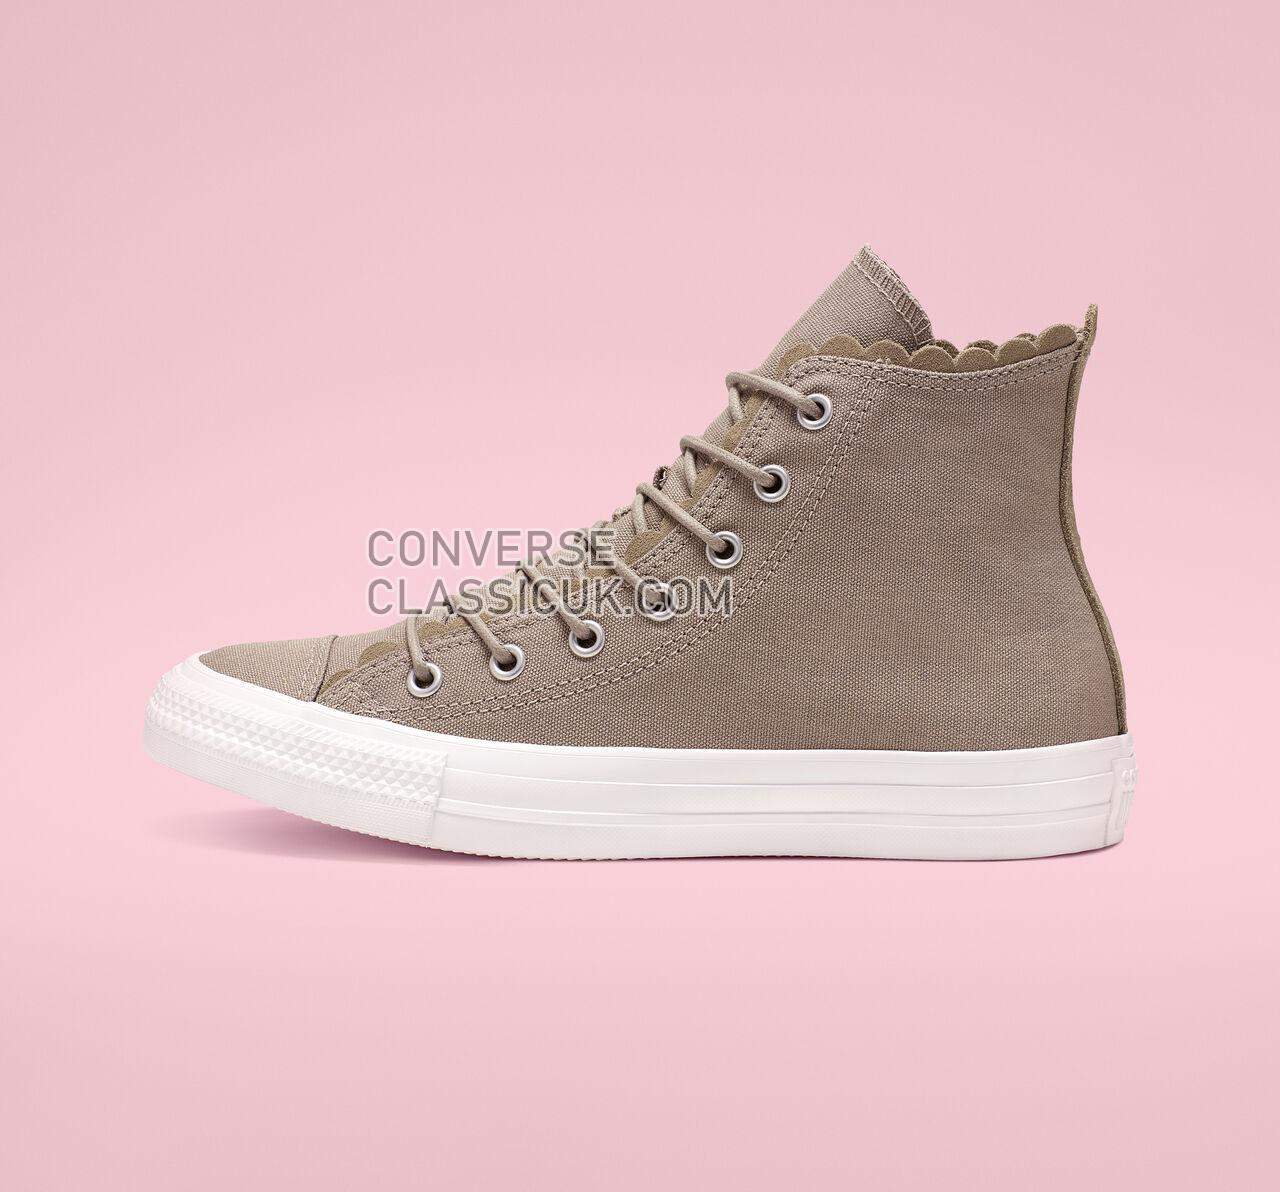 Converse Chuck Taylor All Star Frilly Thrills High Top Womens 564119C Sepia Stone/Sepia Stone/Egret Shoes